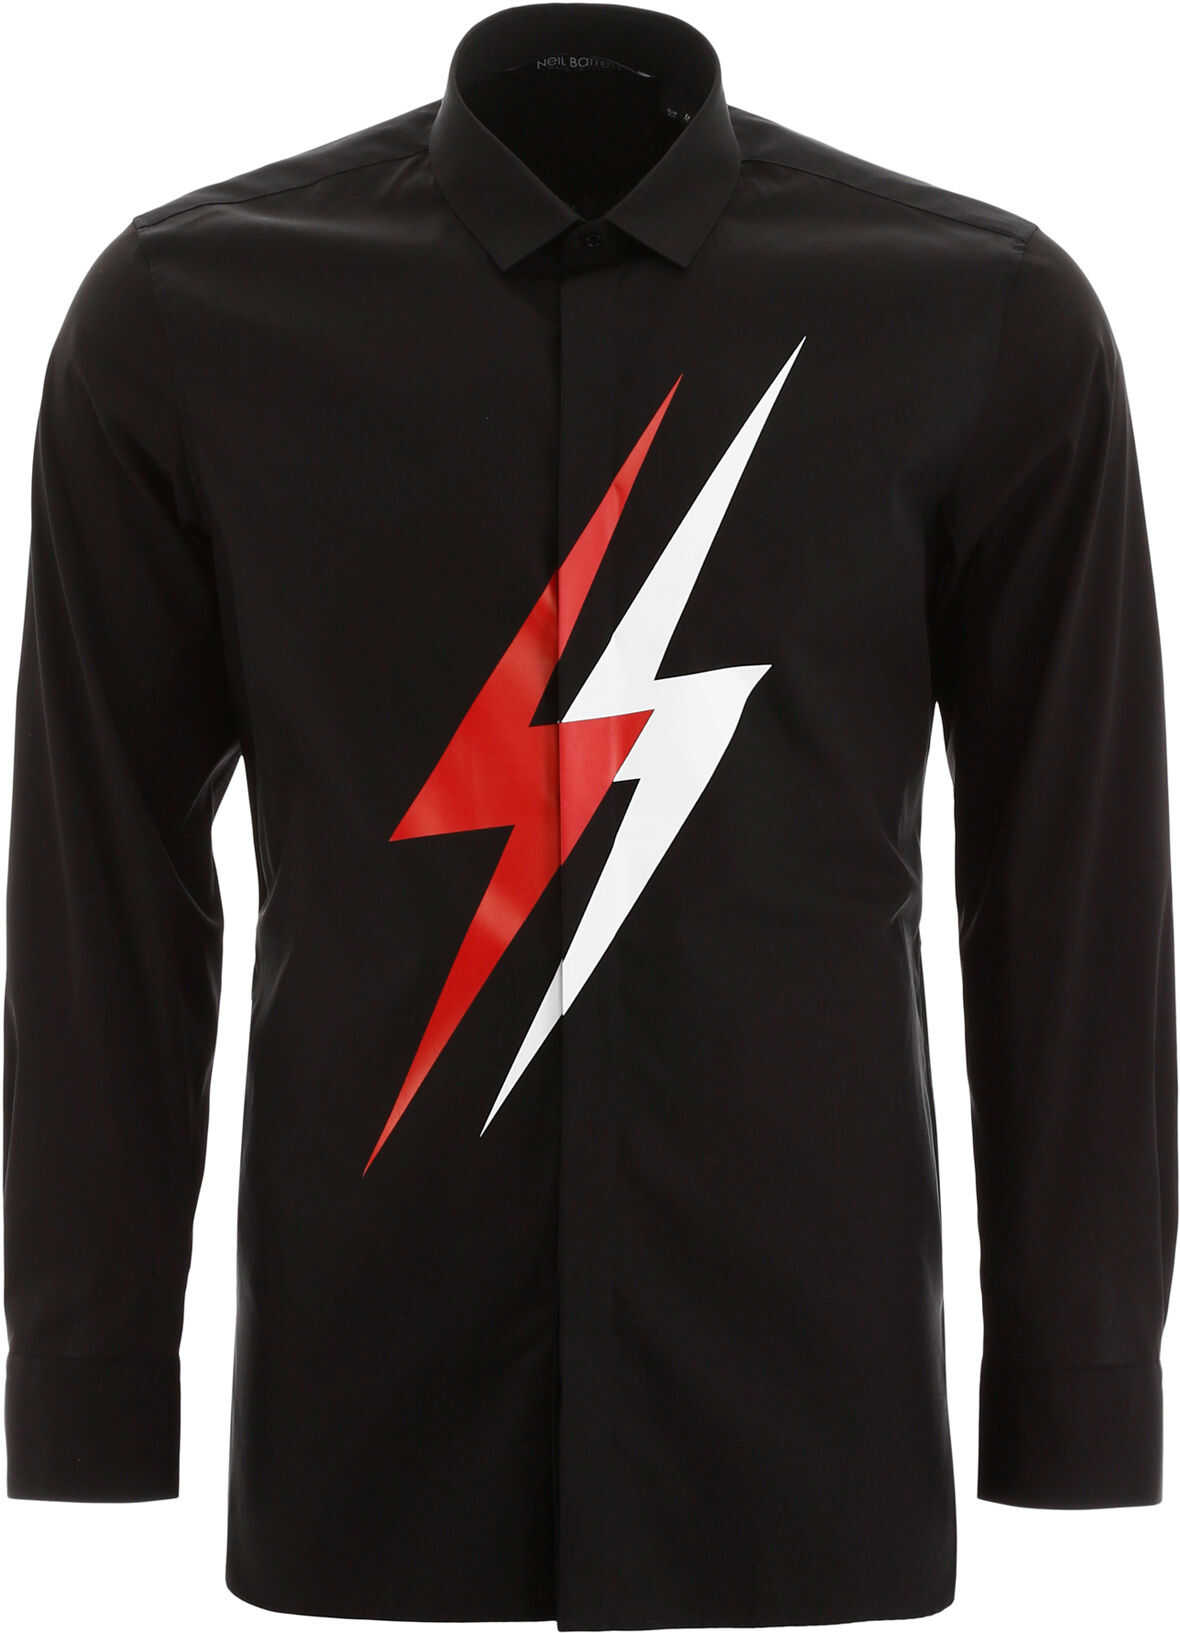 Neil Barrett Bicolor Thunder Shirt BLACK WHITE RED